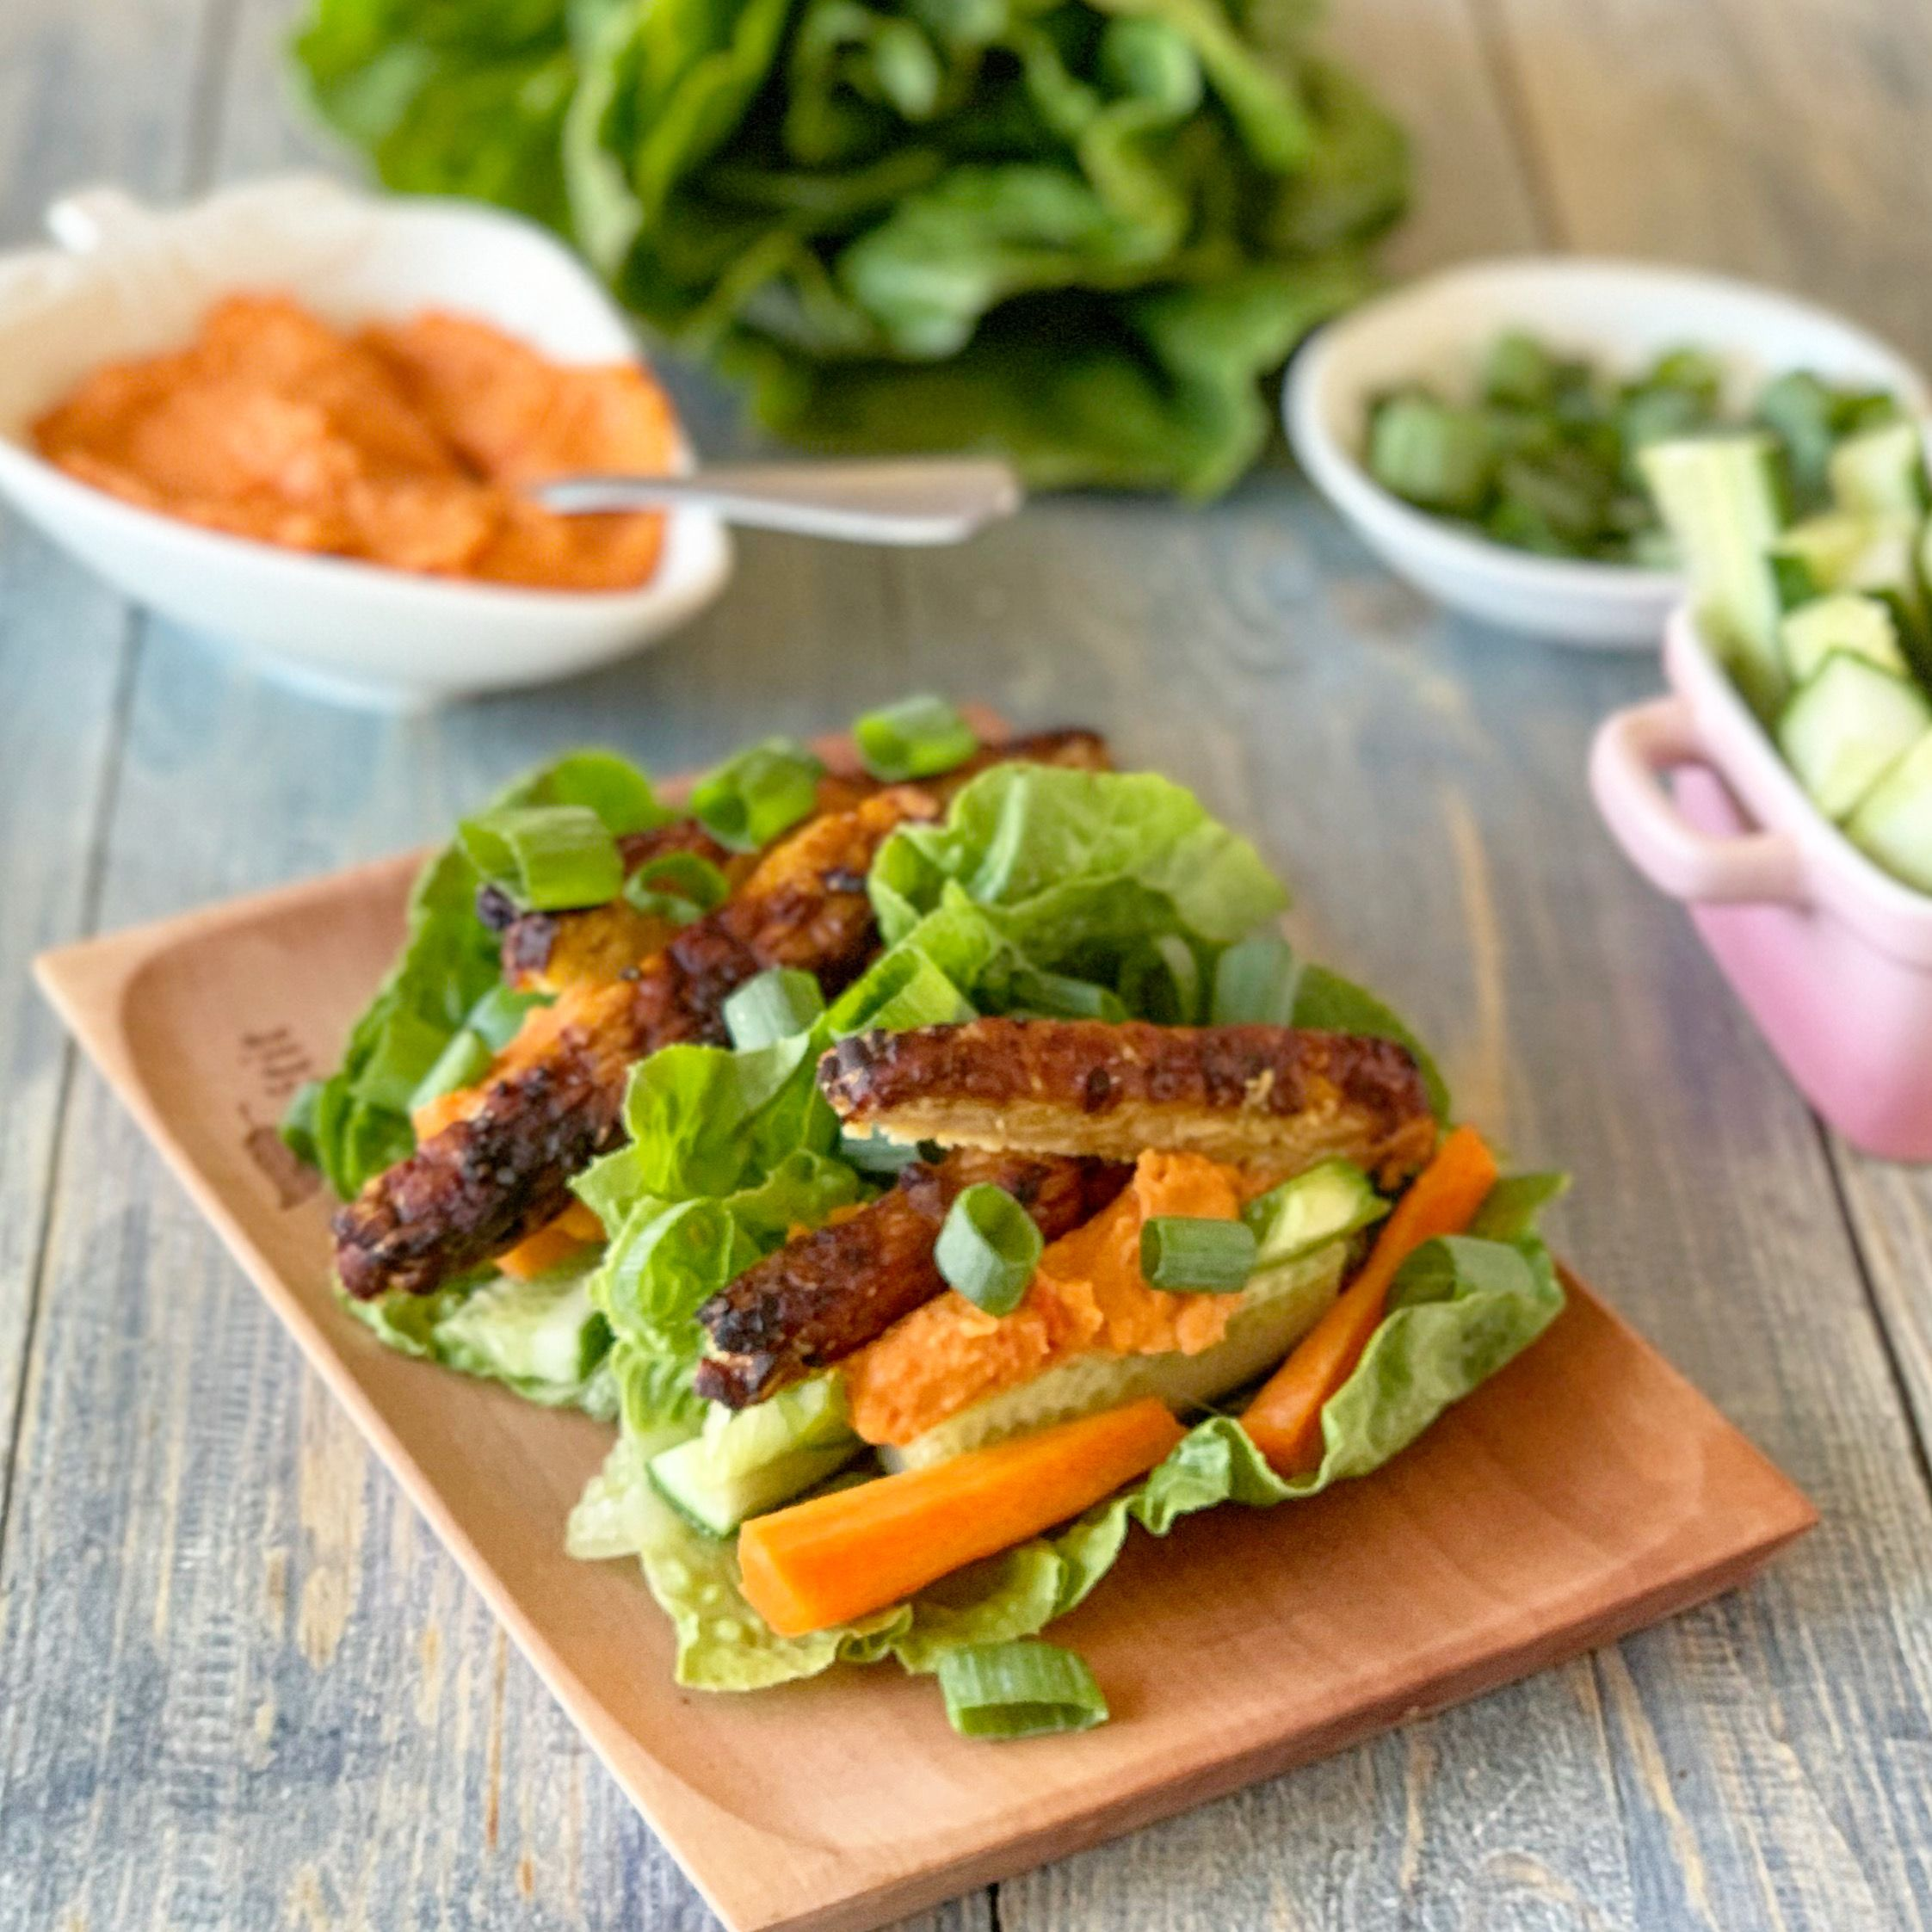 Veggie Loaded Capscium & Hummus Lettuce Wraps